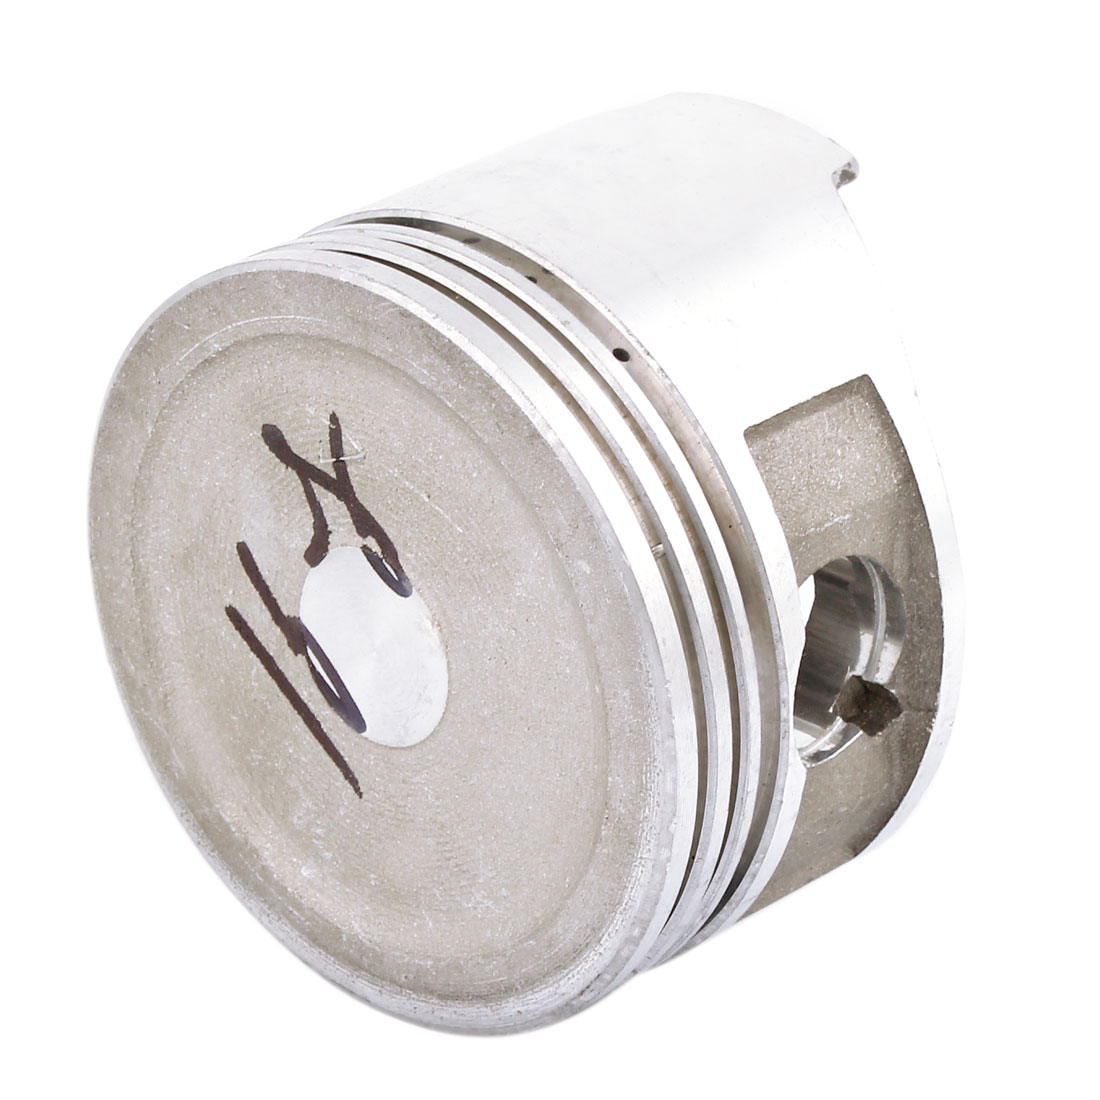 70mm Dia Silver Tone 170 Air Compressor Generator Mower Engine Motor Piston